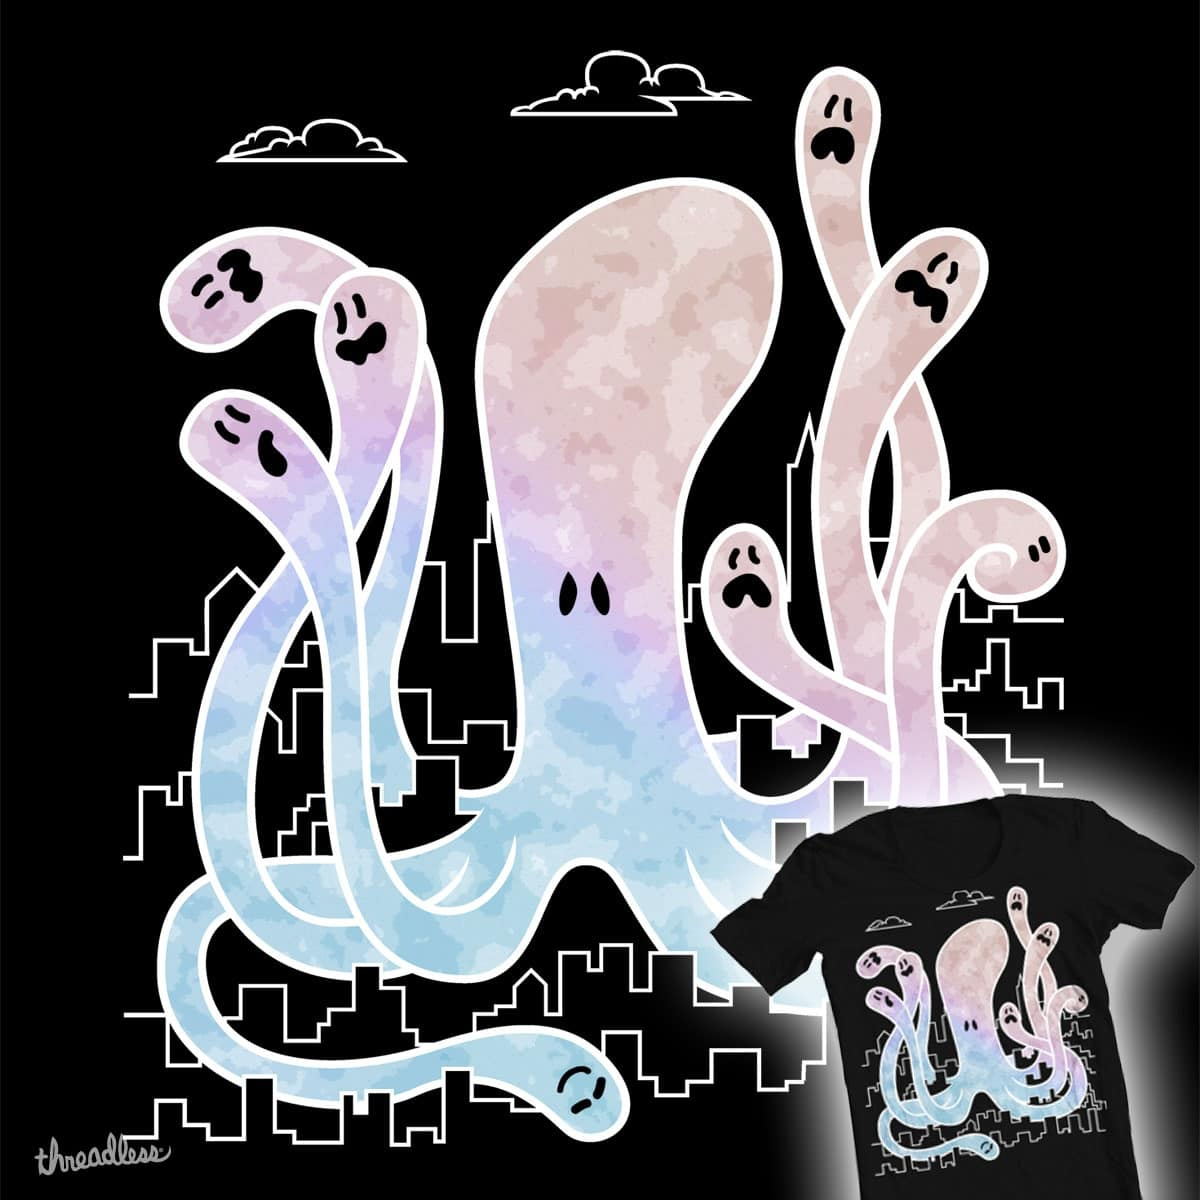 OctoGhost by Profeta999 on Threadless